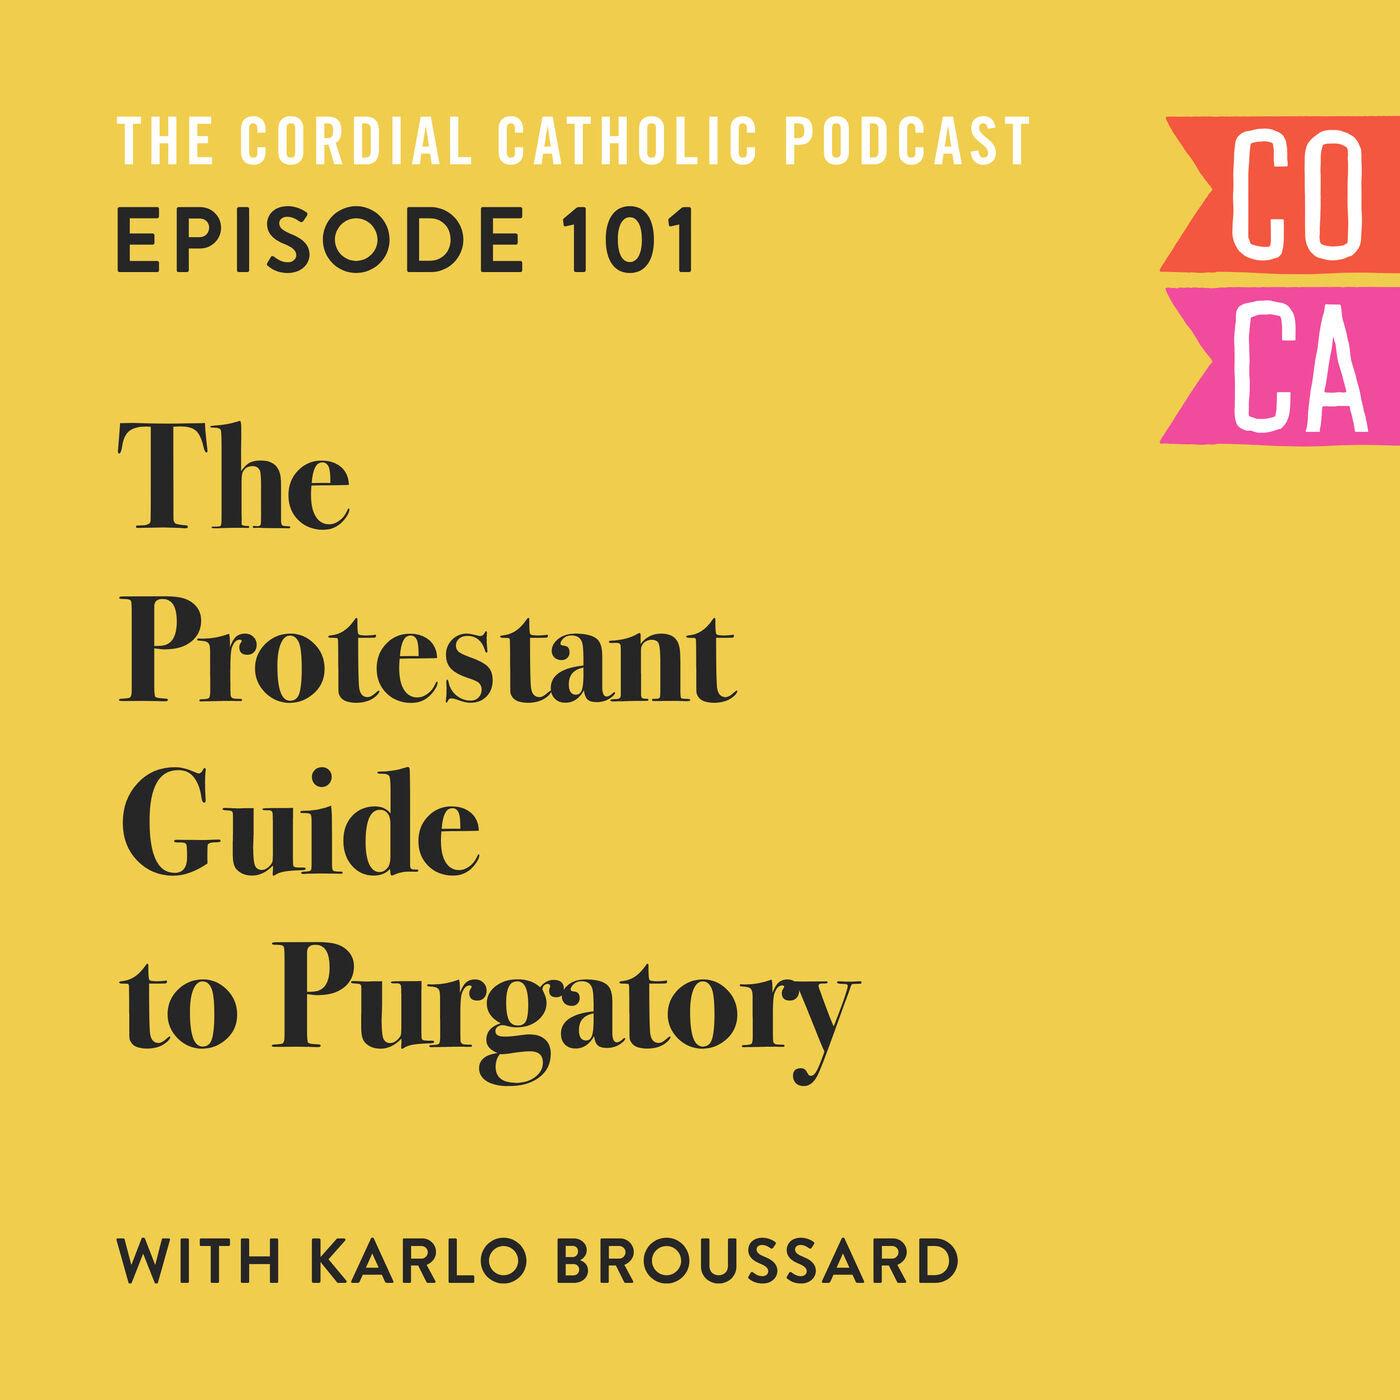 101: The Protestant Guide to Purgatory (w/ Karlo Broussard)